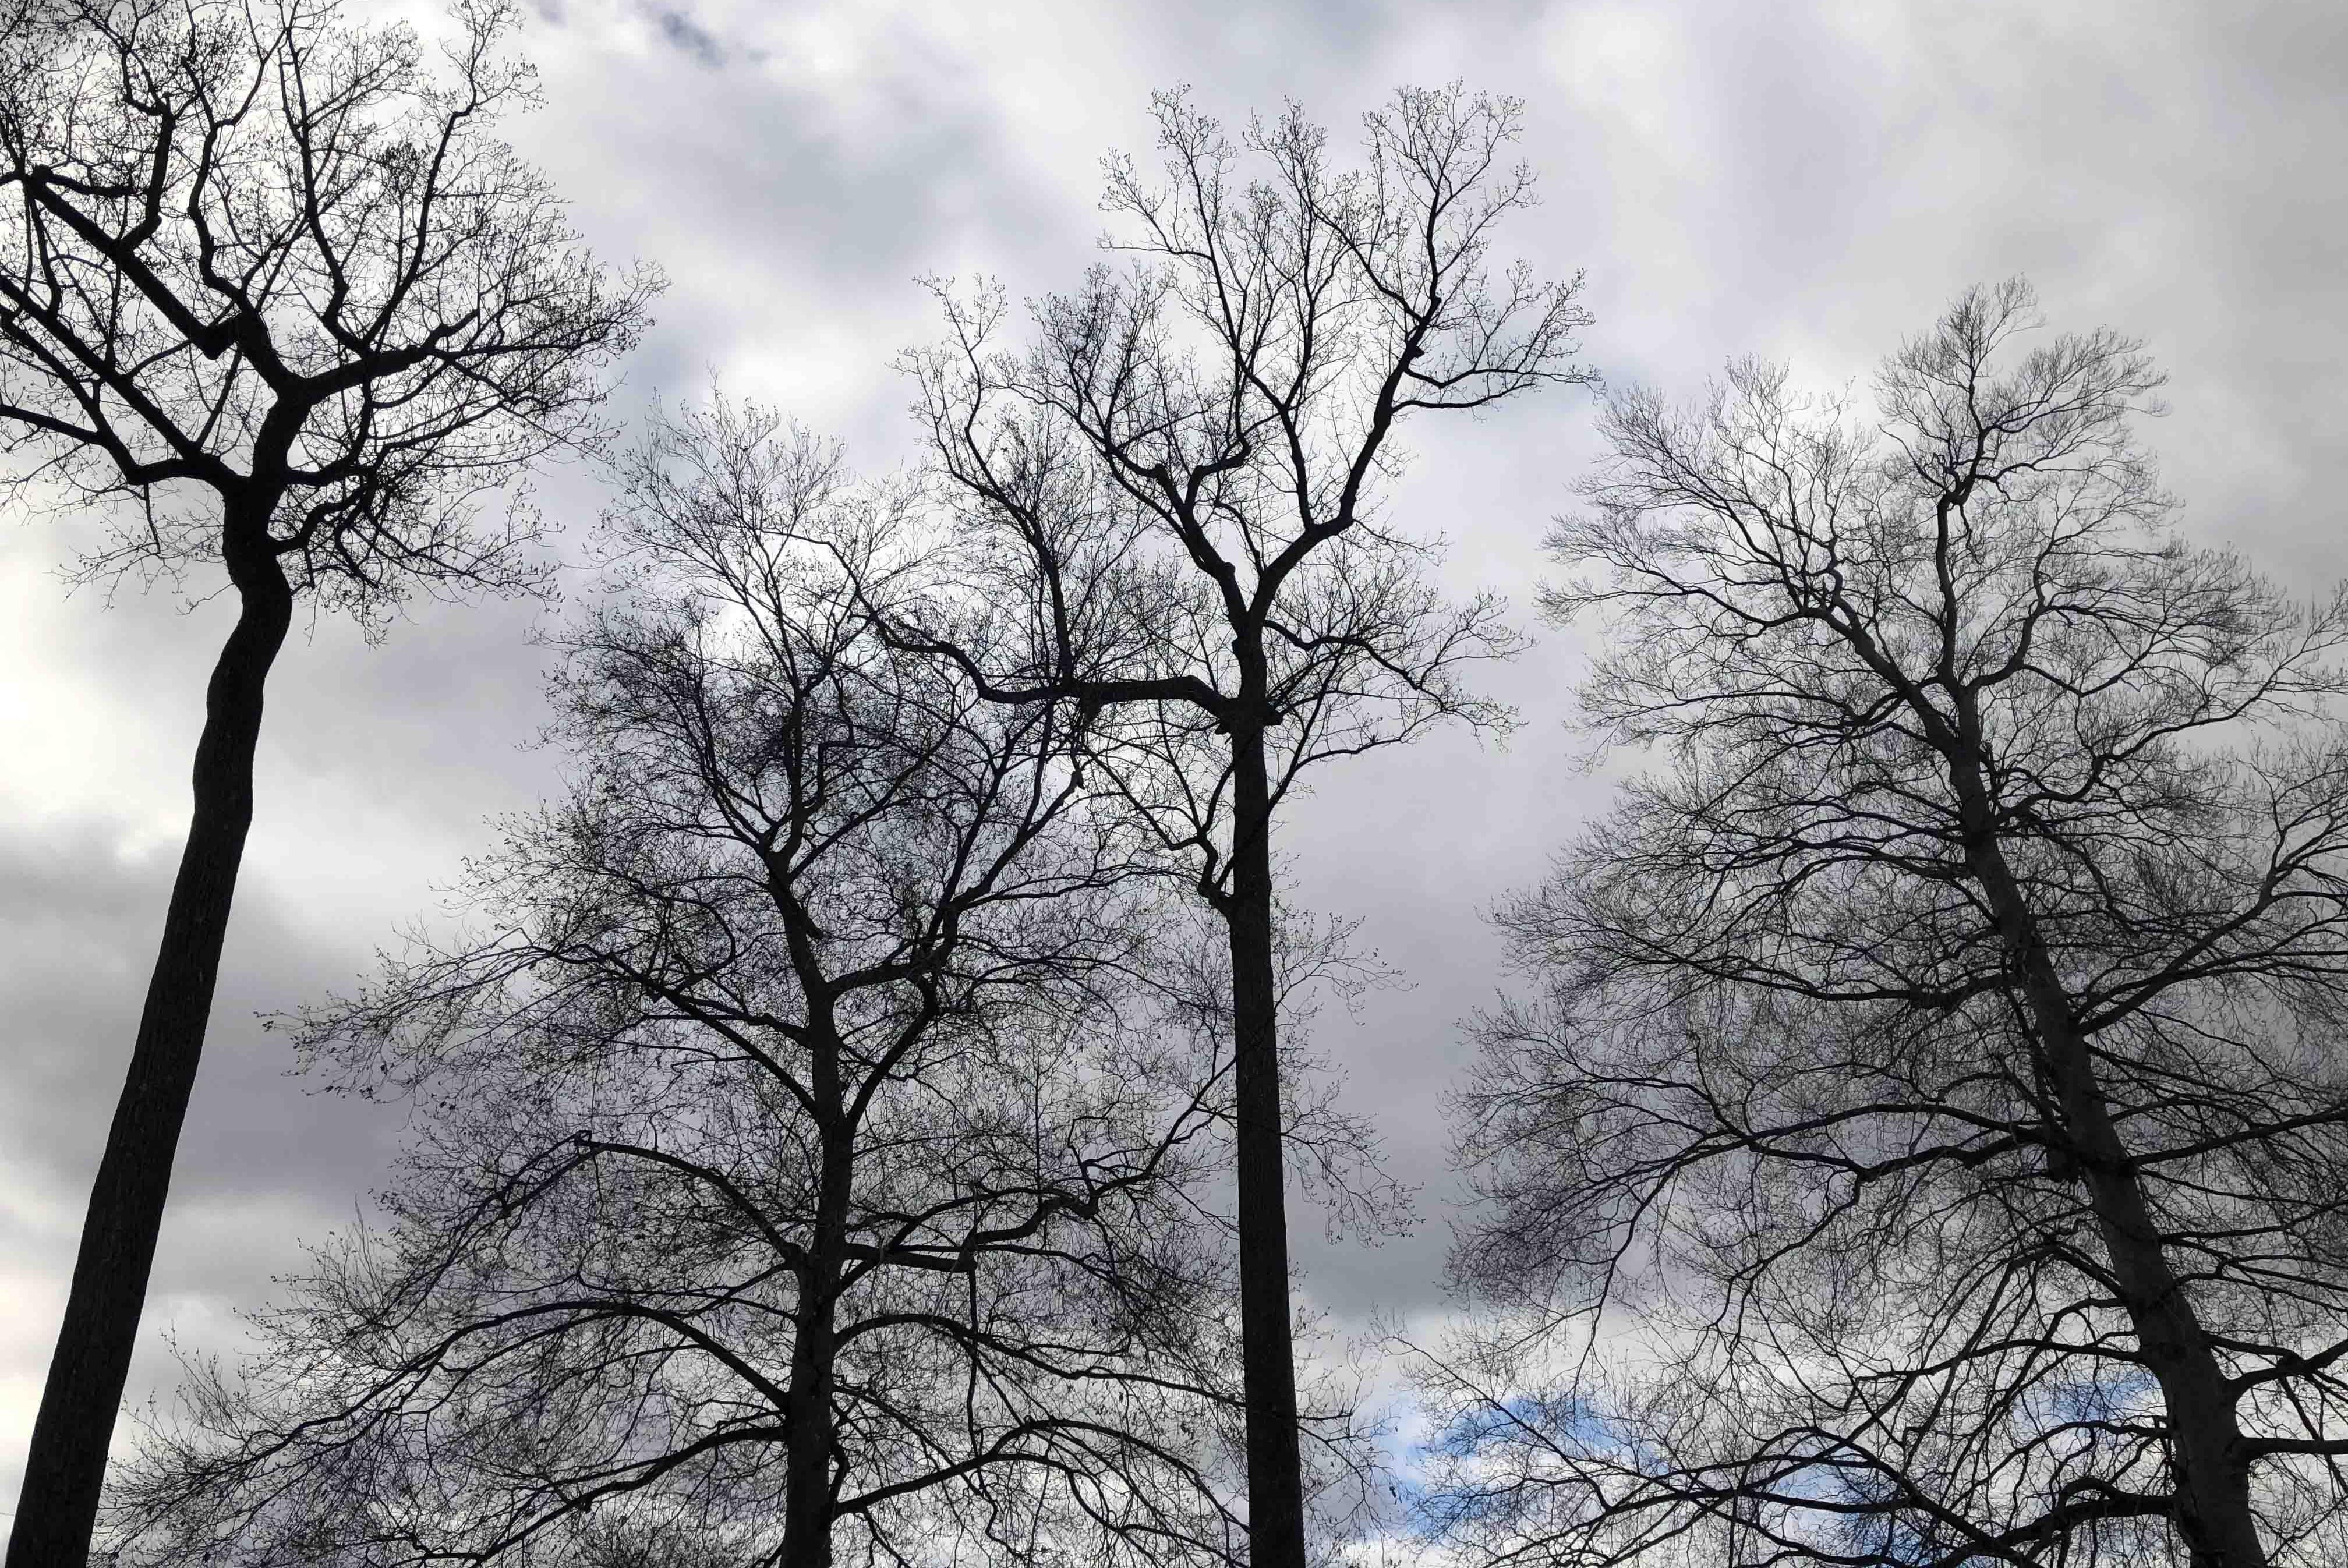 Image of trees on campus against a cloudy sky.